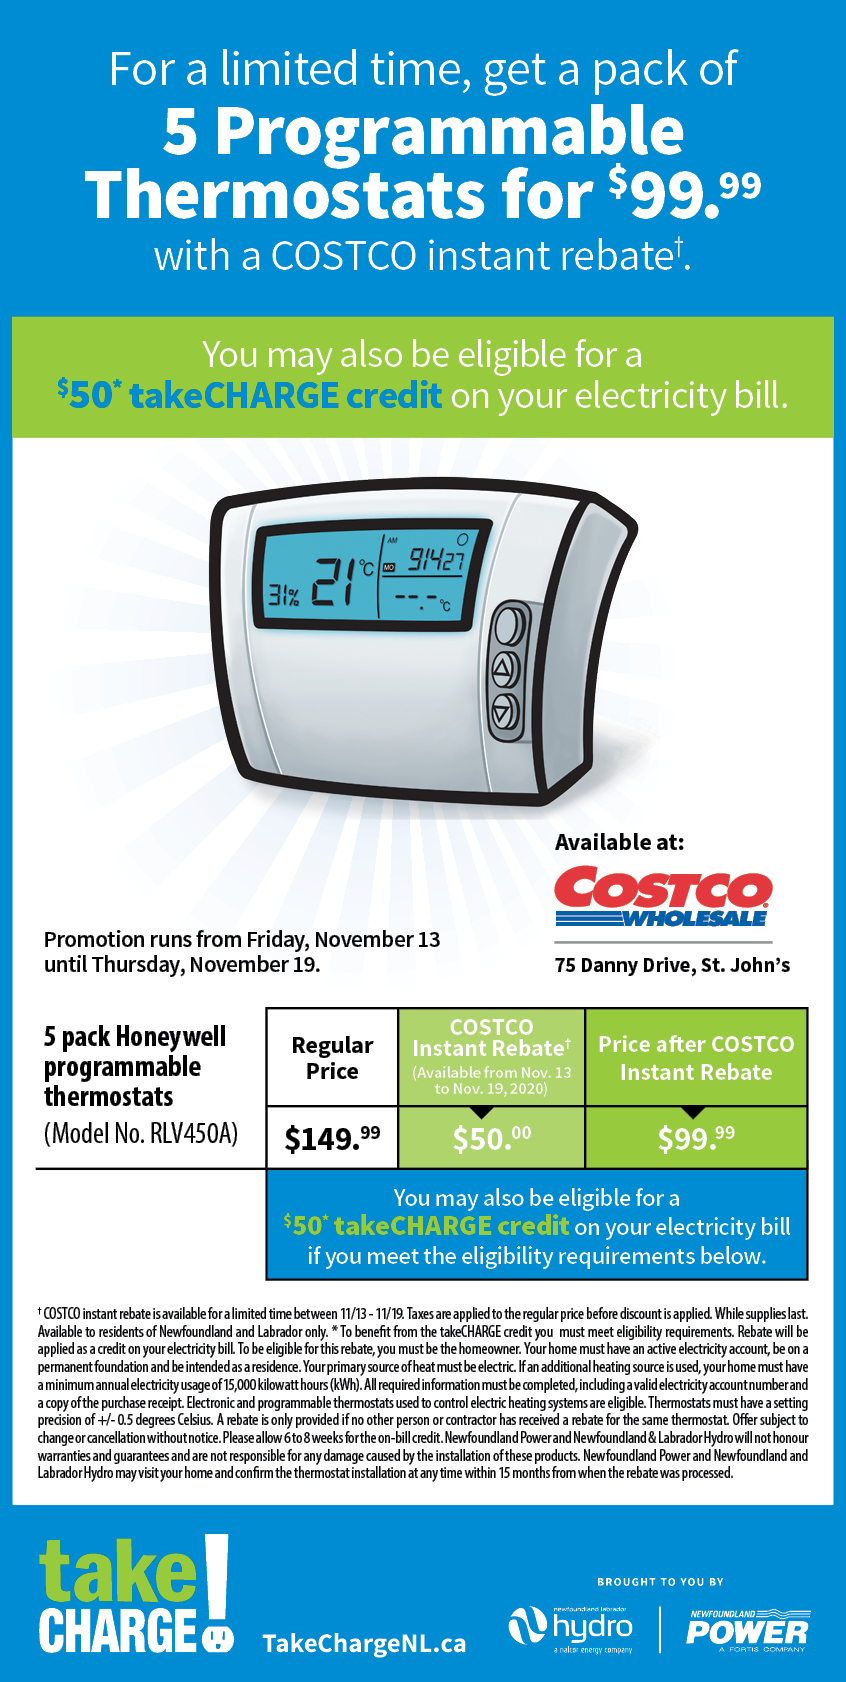 Ditch the Dial with takeCHARGE at Costco!